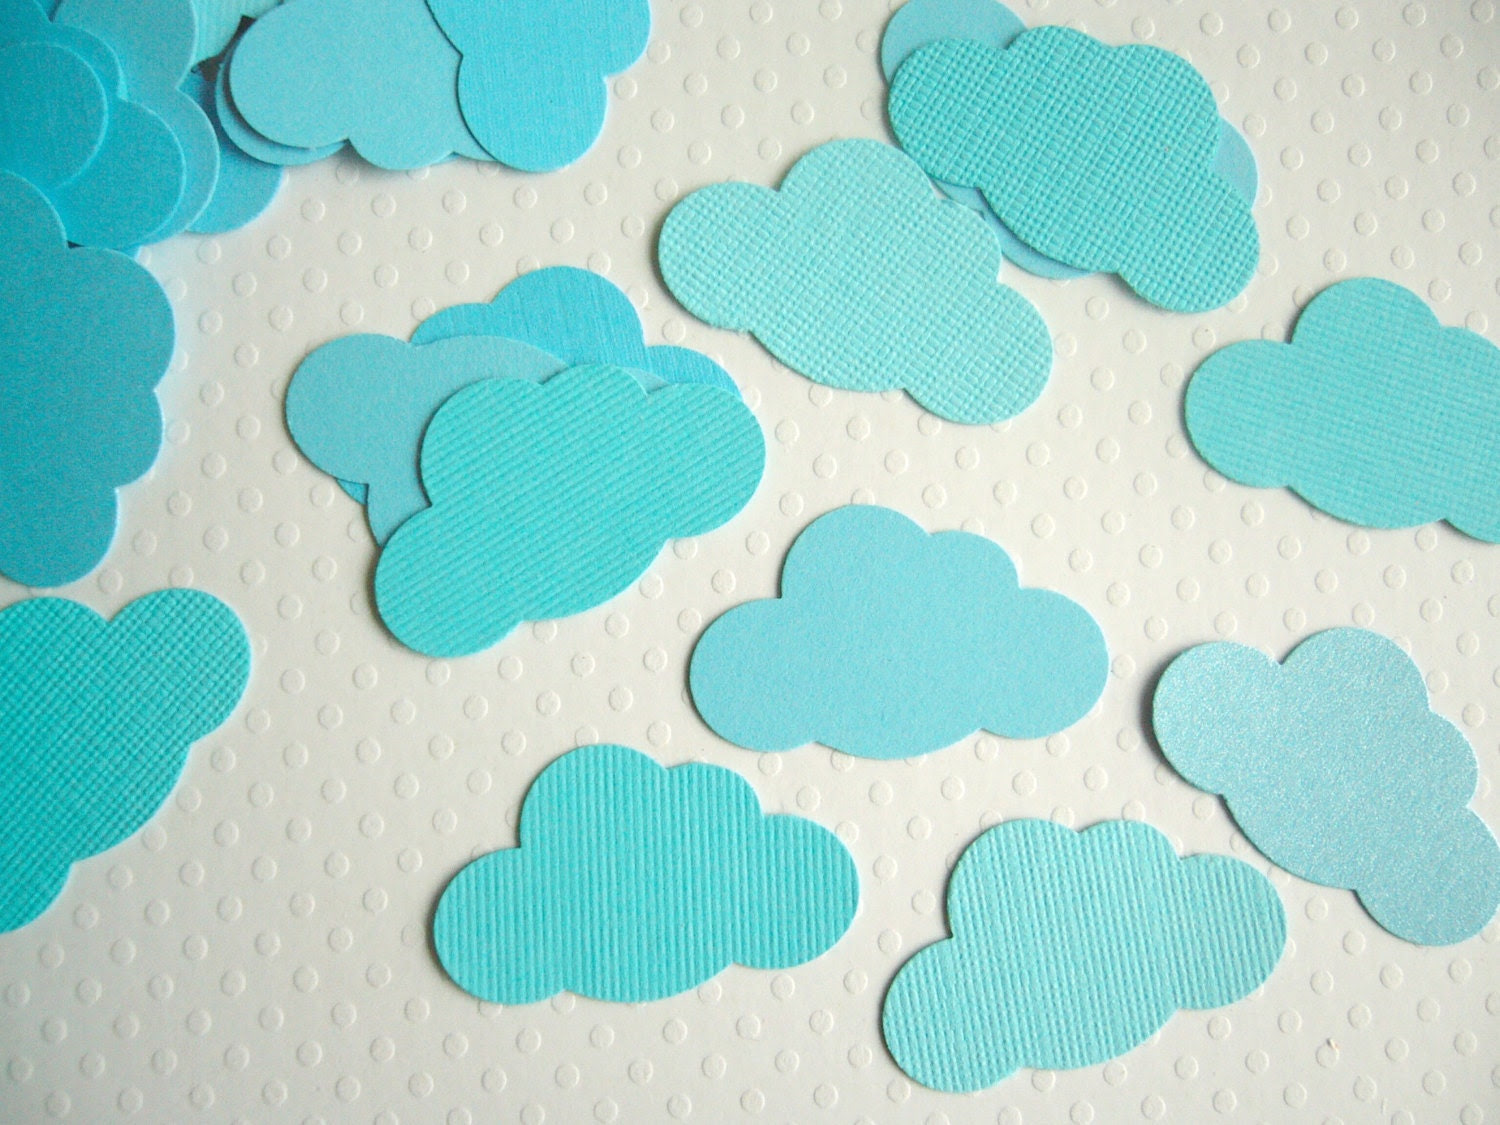 Paper Cloud Confetti - Baby Shower Wedding Party decor favor - ddeforest